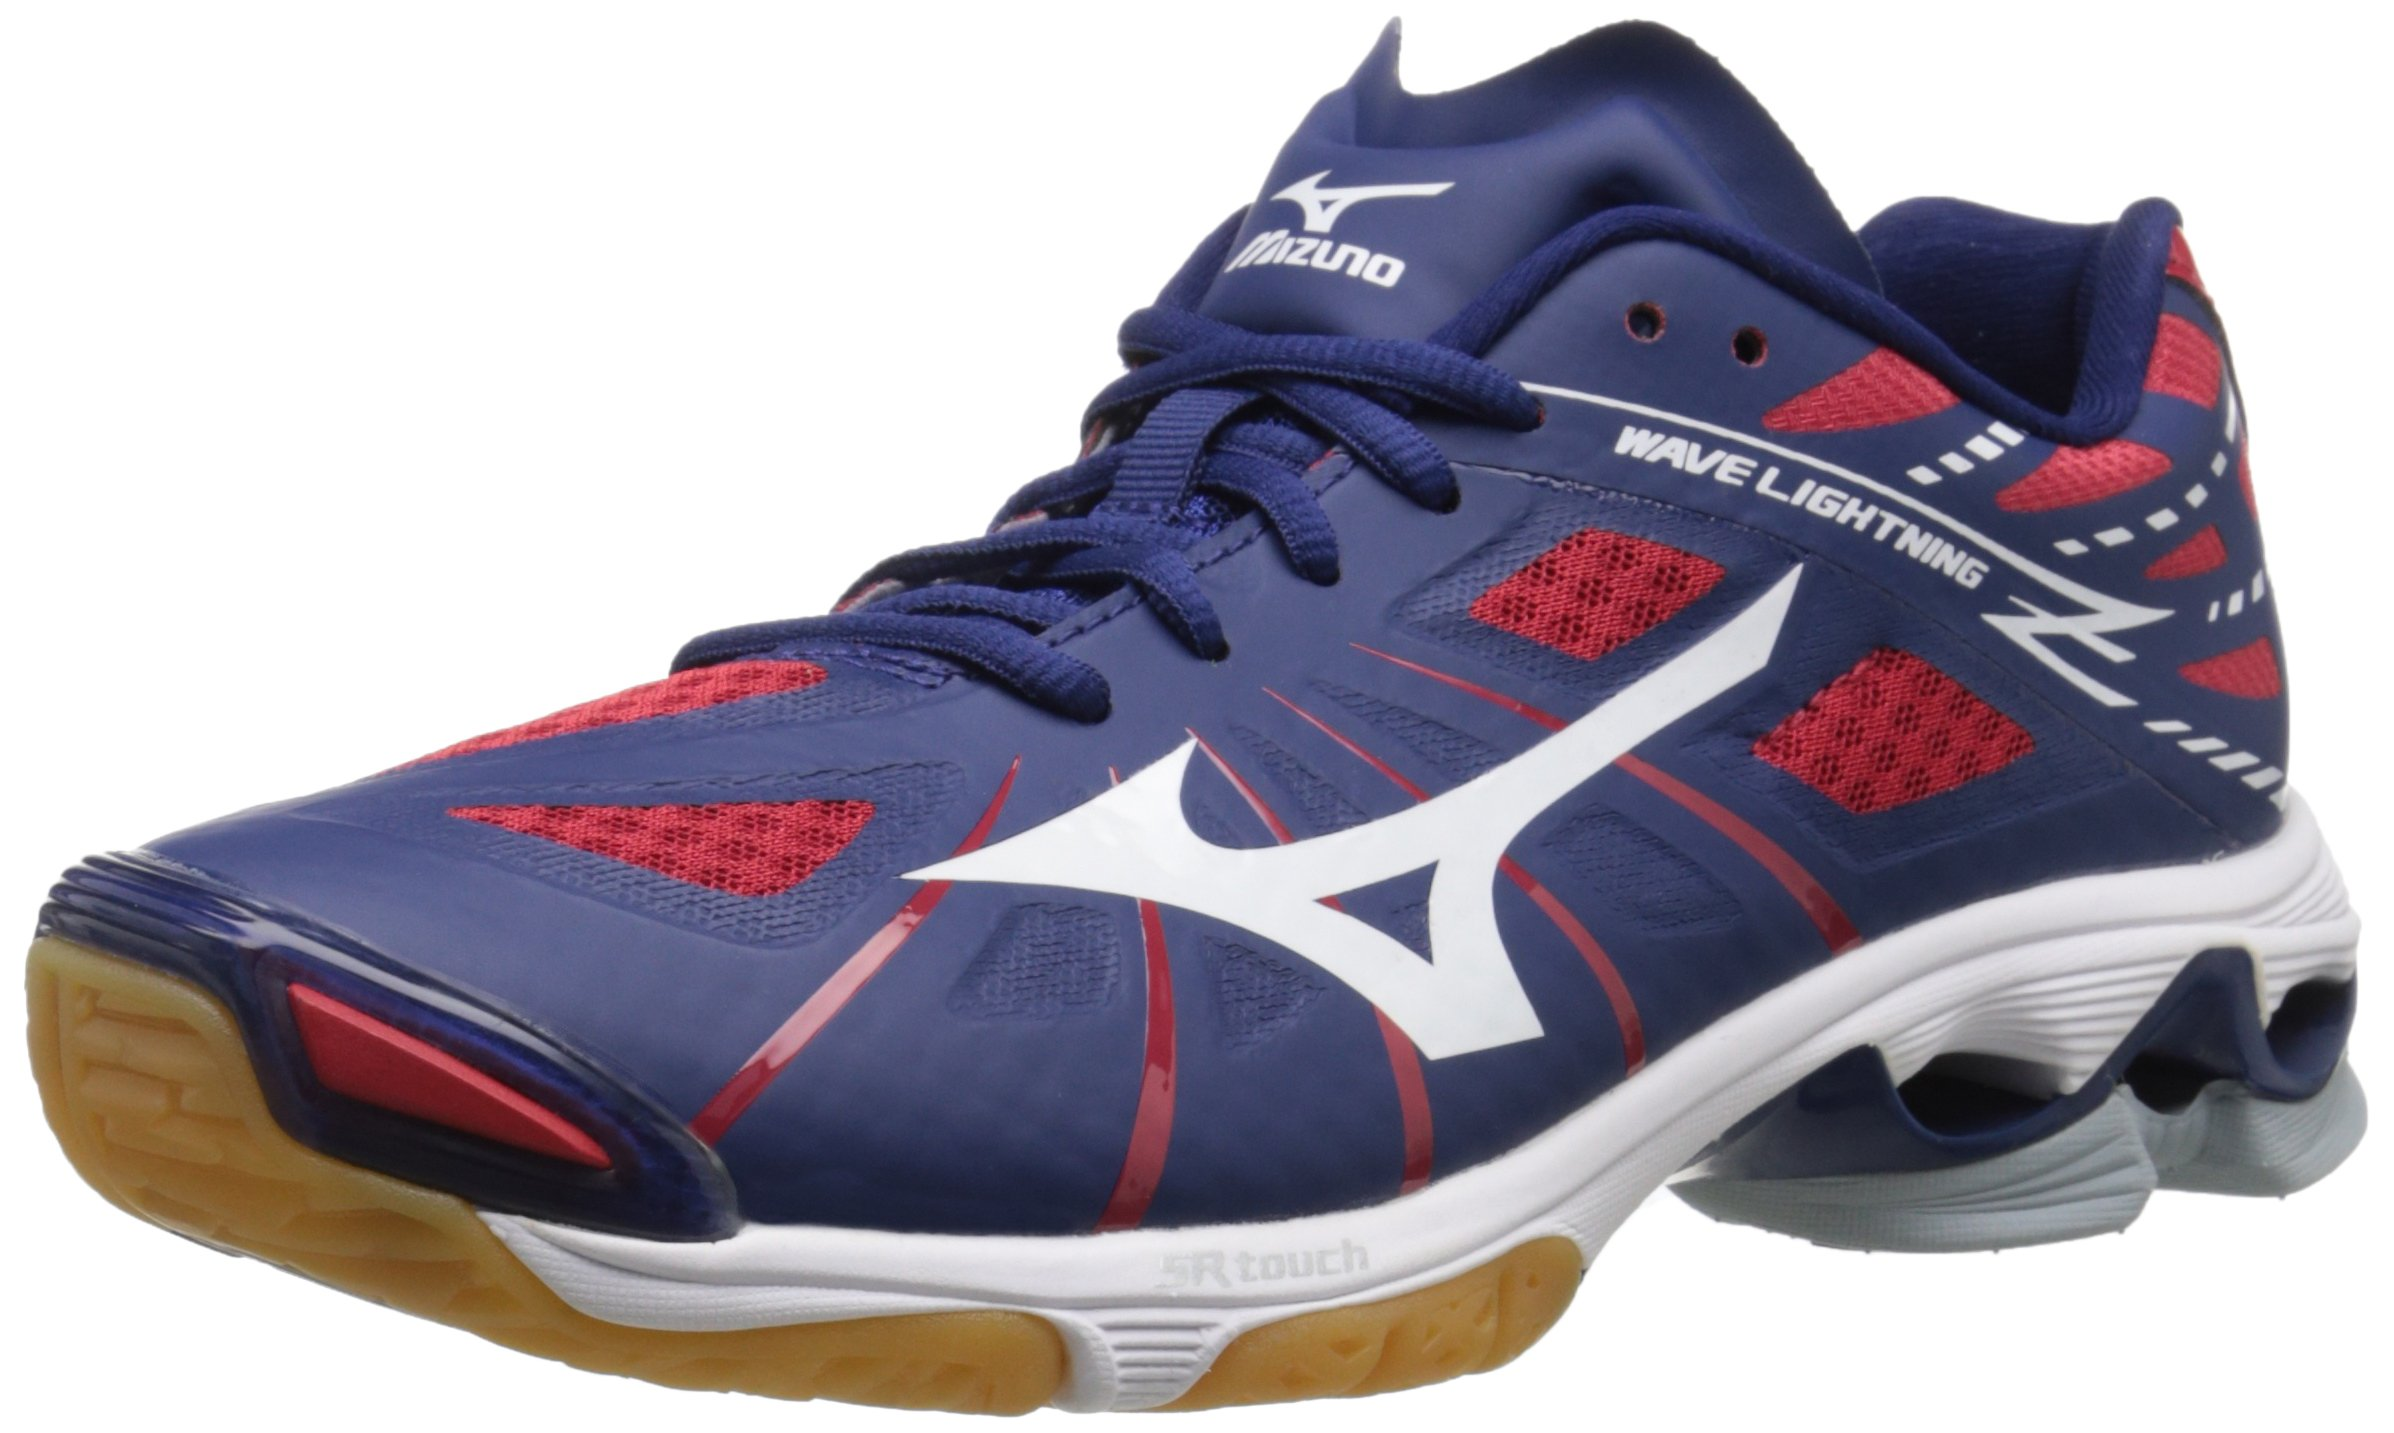 Mizuno Men's Wave Lightning Z NY-RD Volleyball Shoe, Navy/Red, 12.5 D US